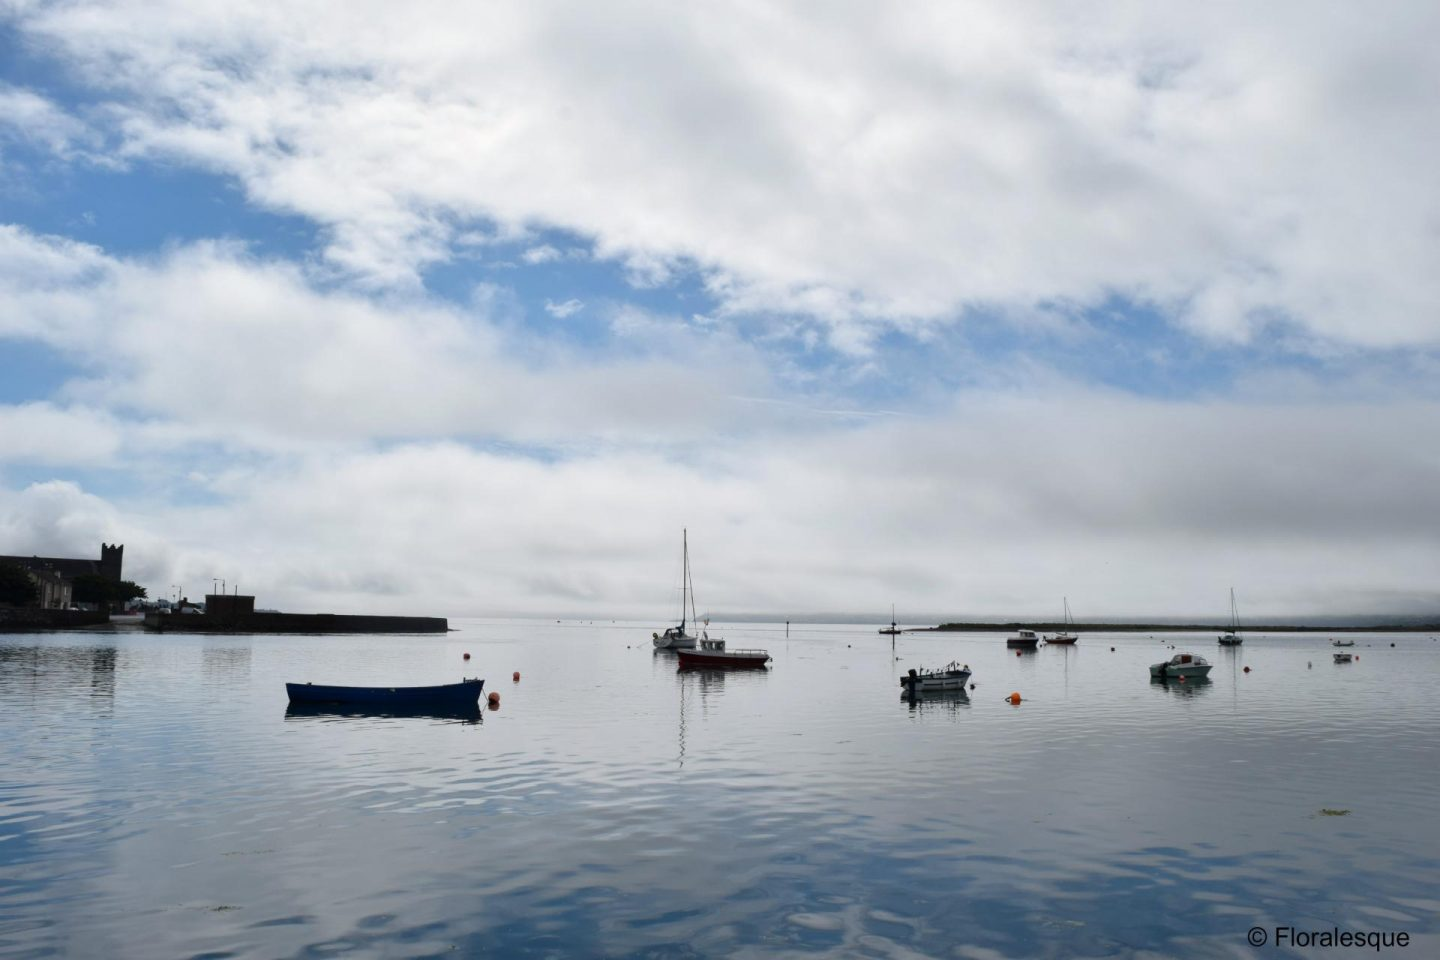 A morning spent in Dungarven